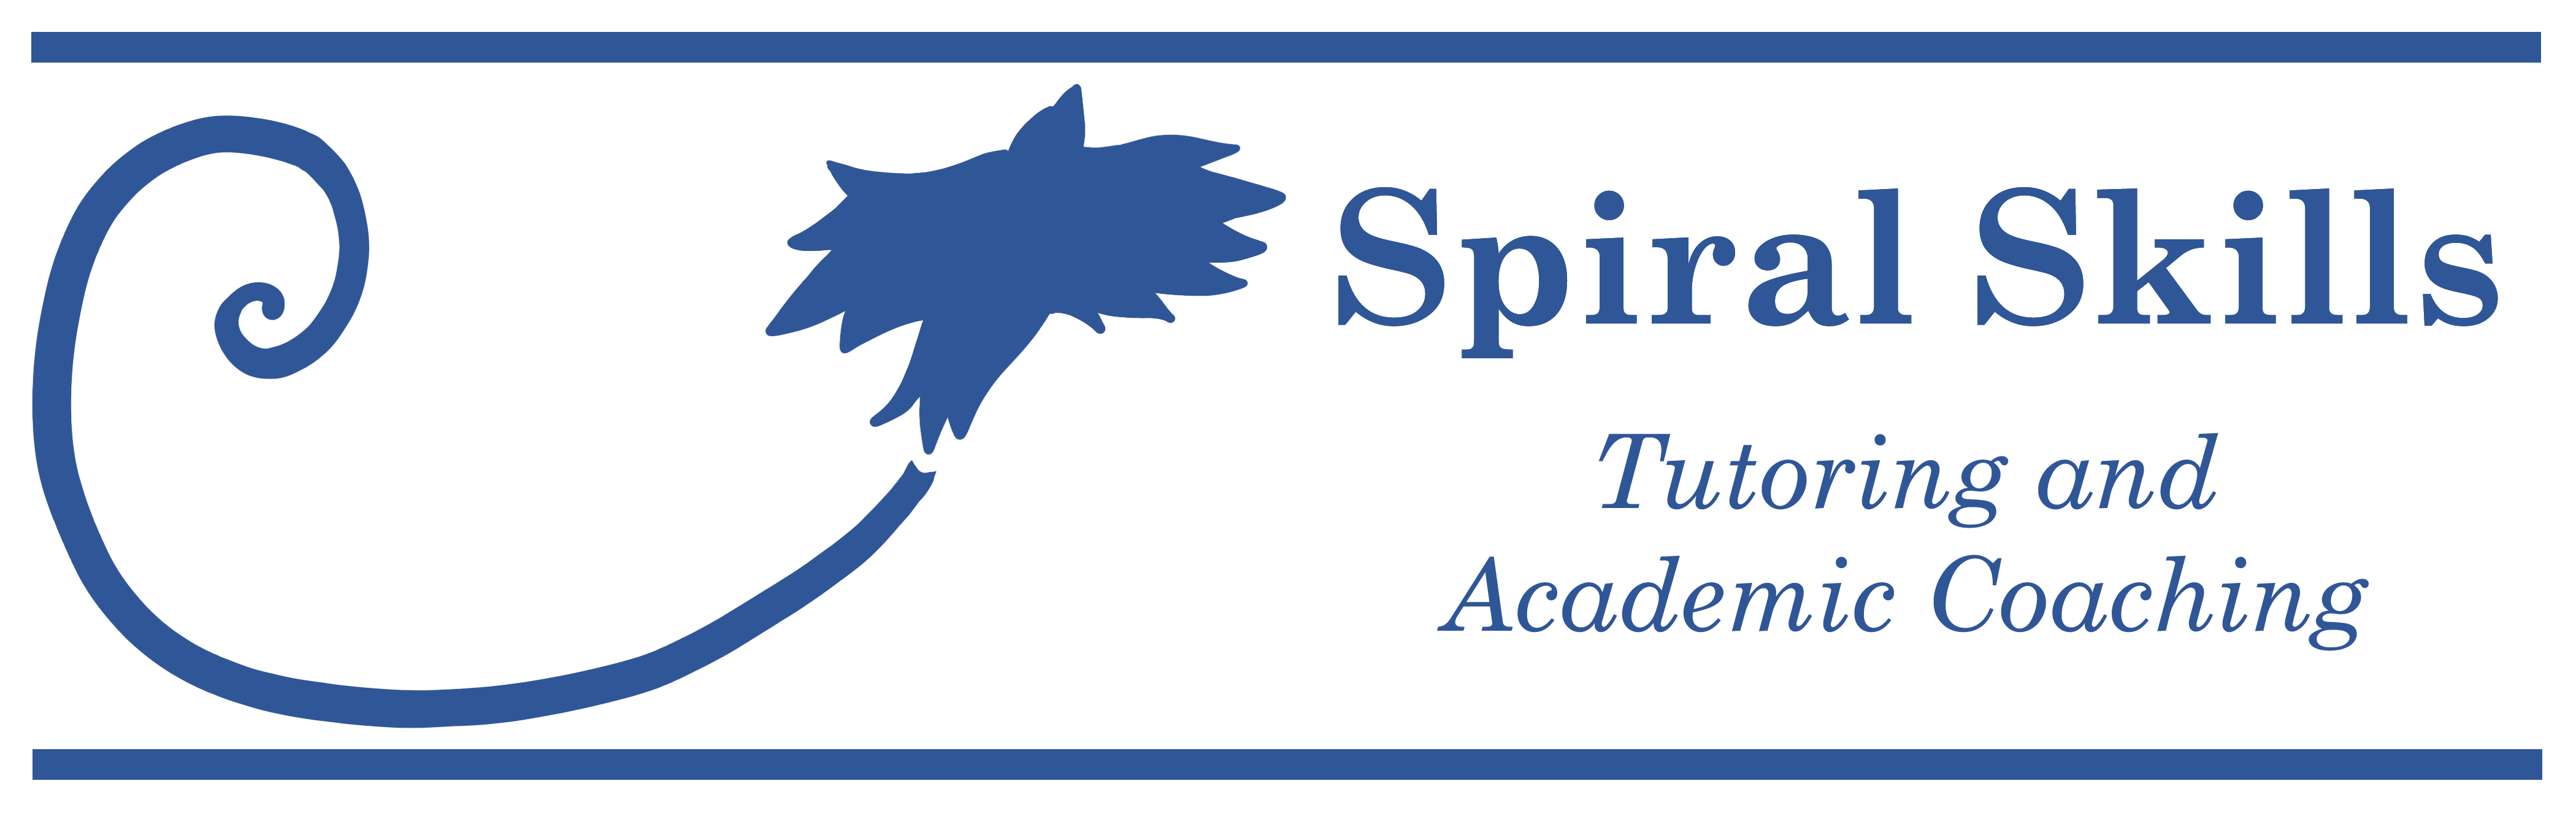 Spiral Skills Tutoring and Academic Coaching